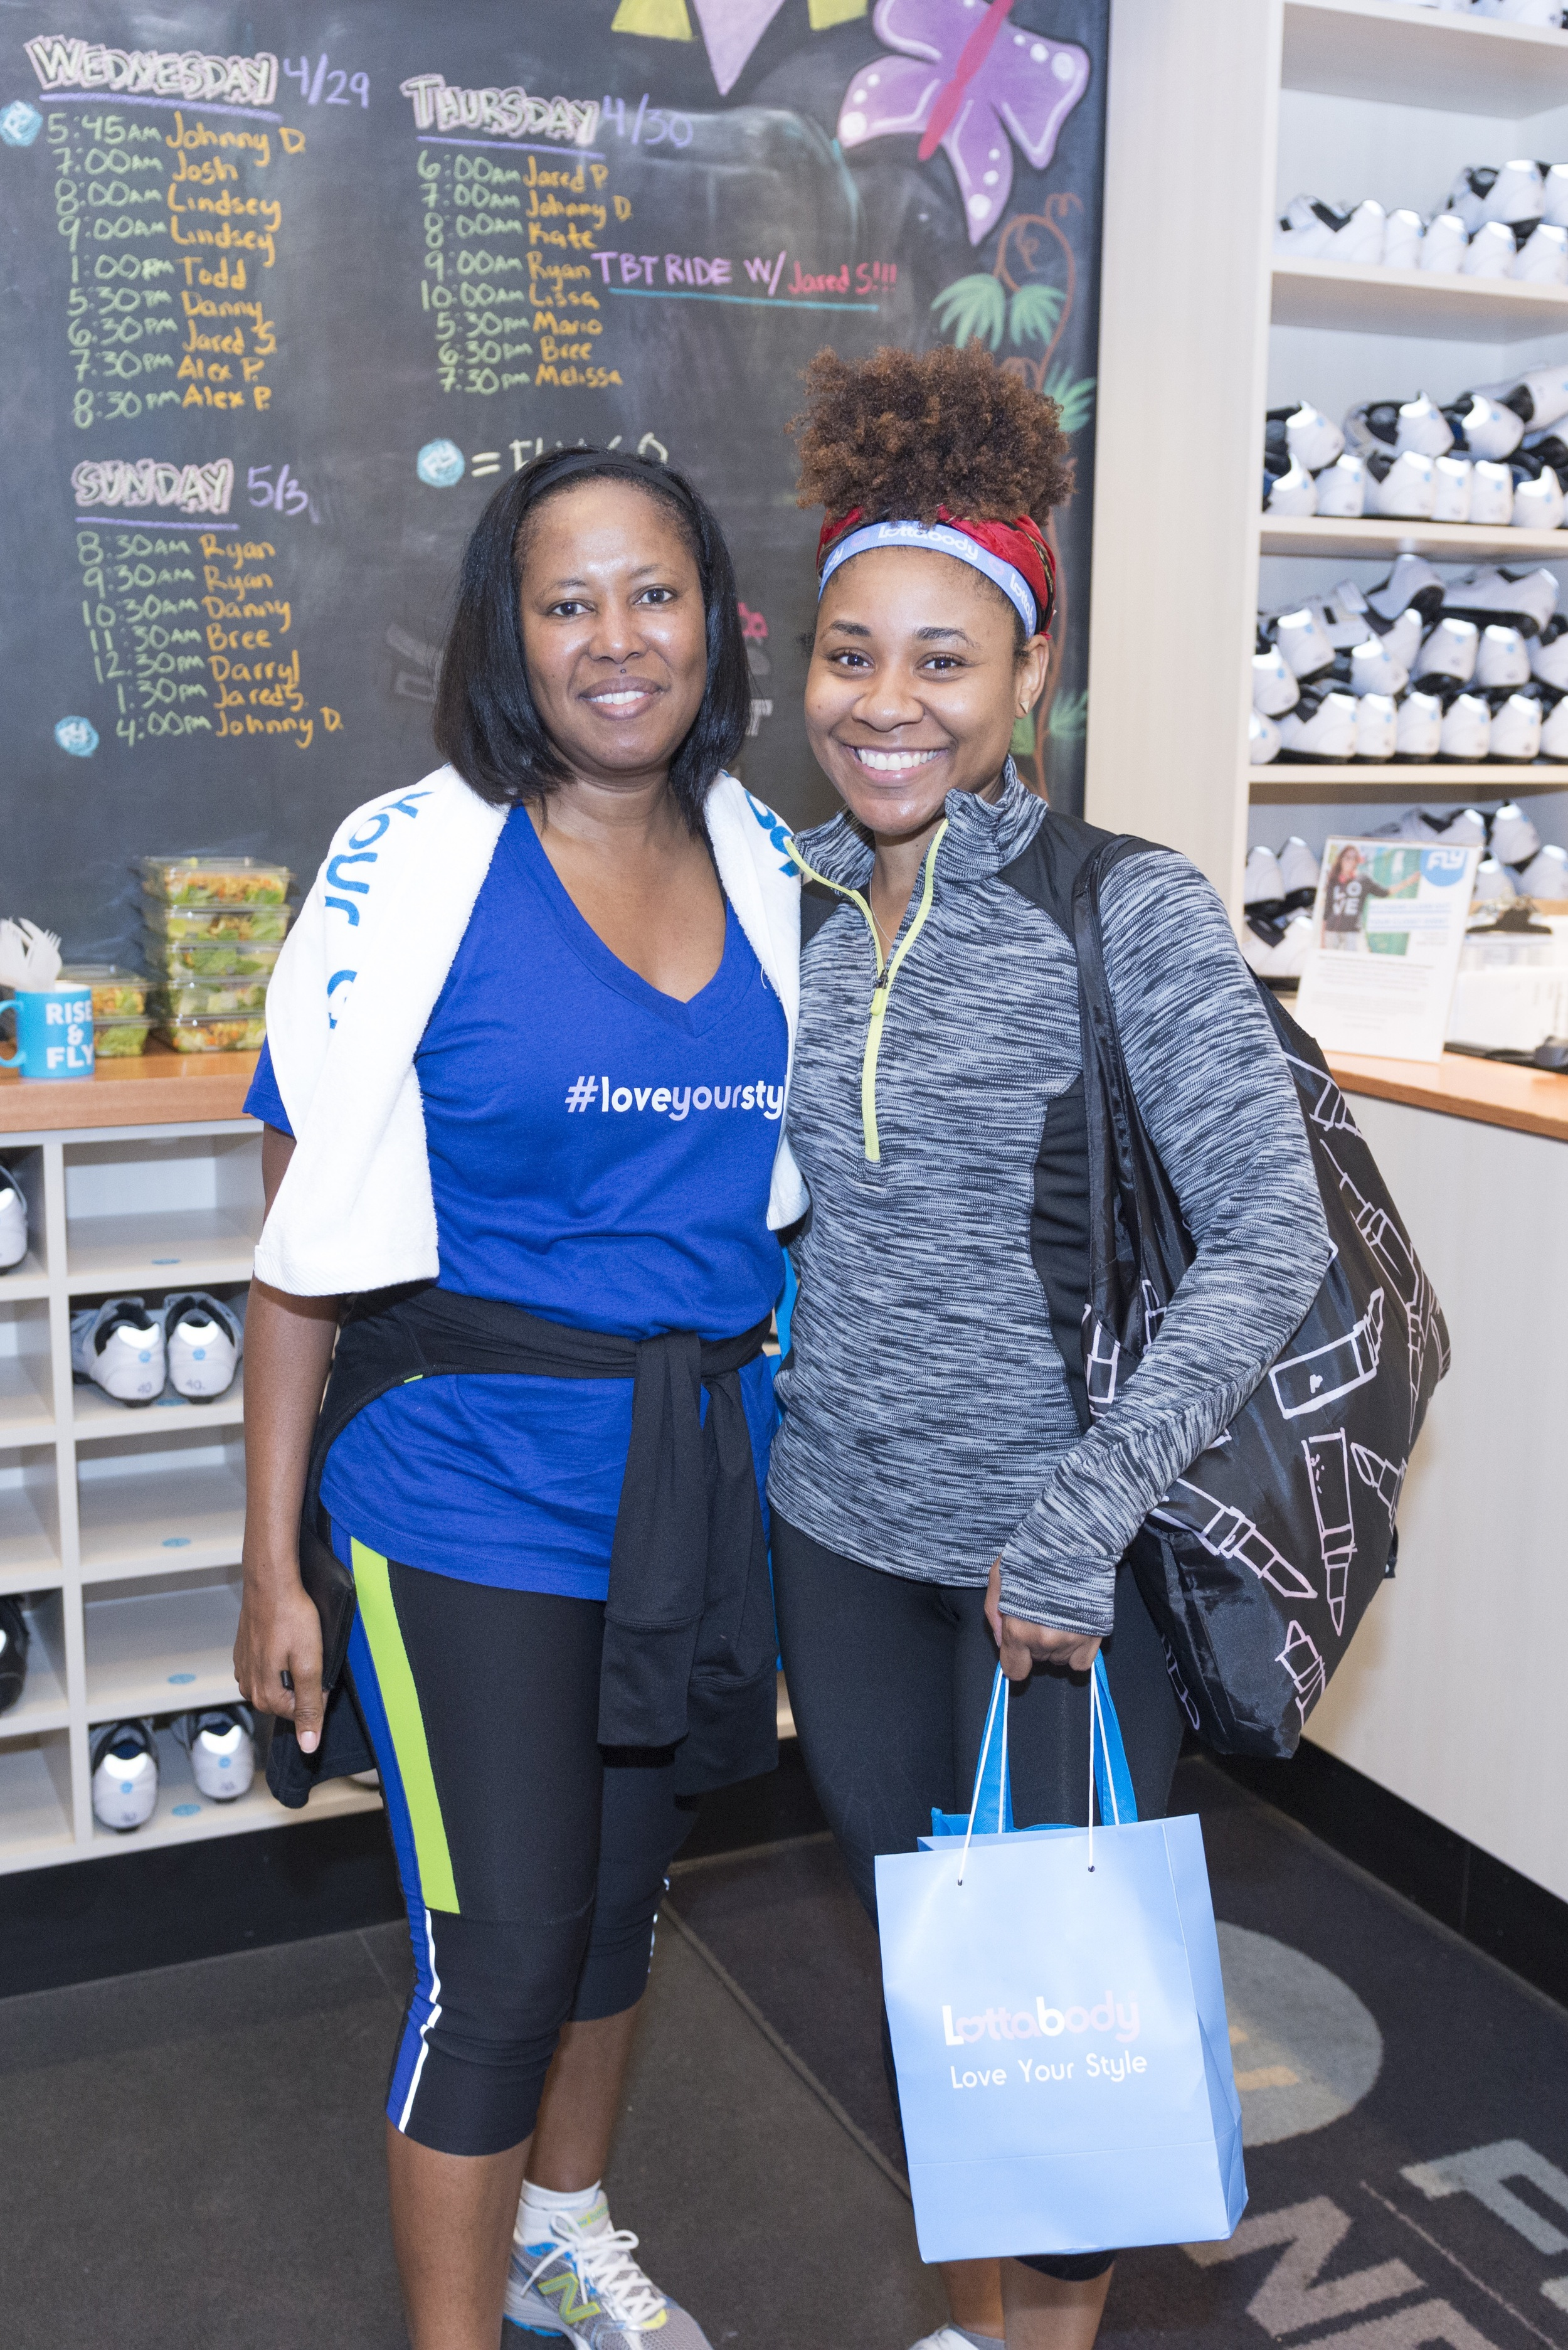 All smiles after the spin class with Jolorie Williams, Vice President of Multicultural Marketing.